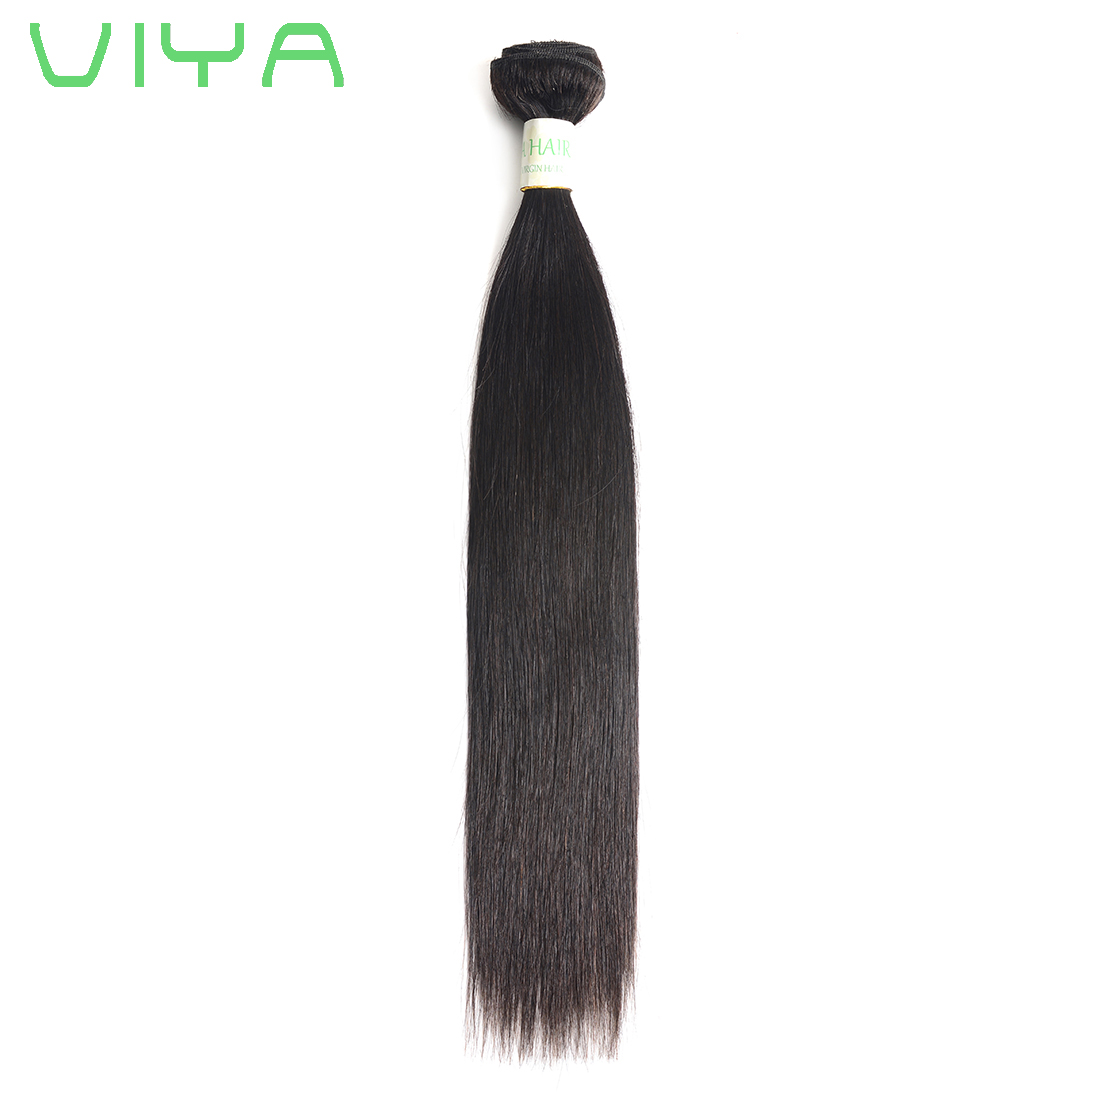 Peruvian Virgin Hair Straight 3bundle Deals 7a Peruvian Straight